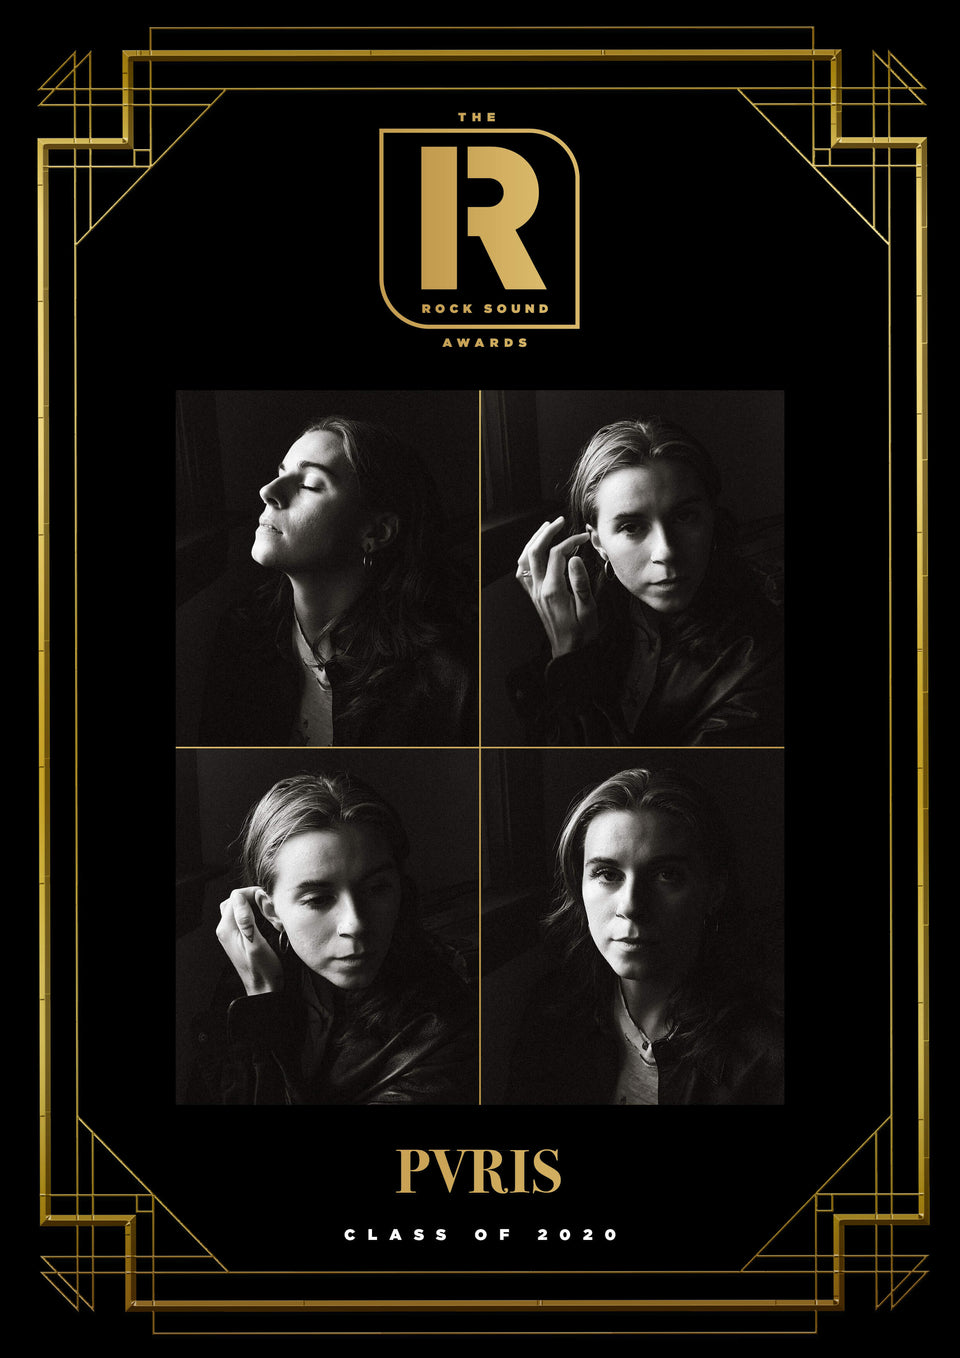 Rock Sound Awards 273.1 - PVRIS